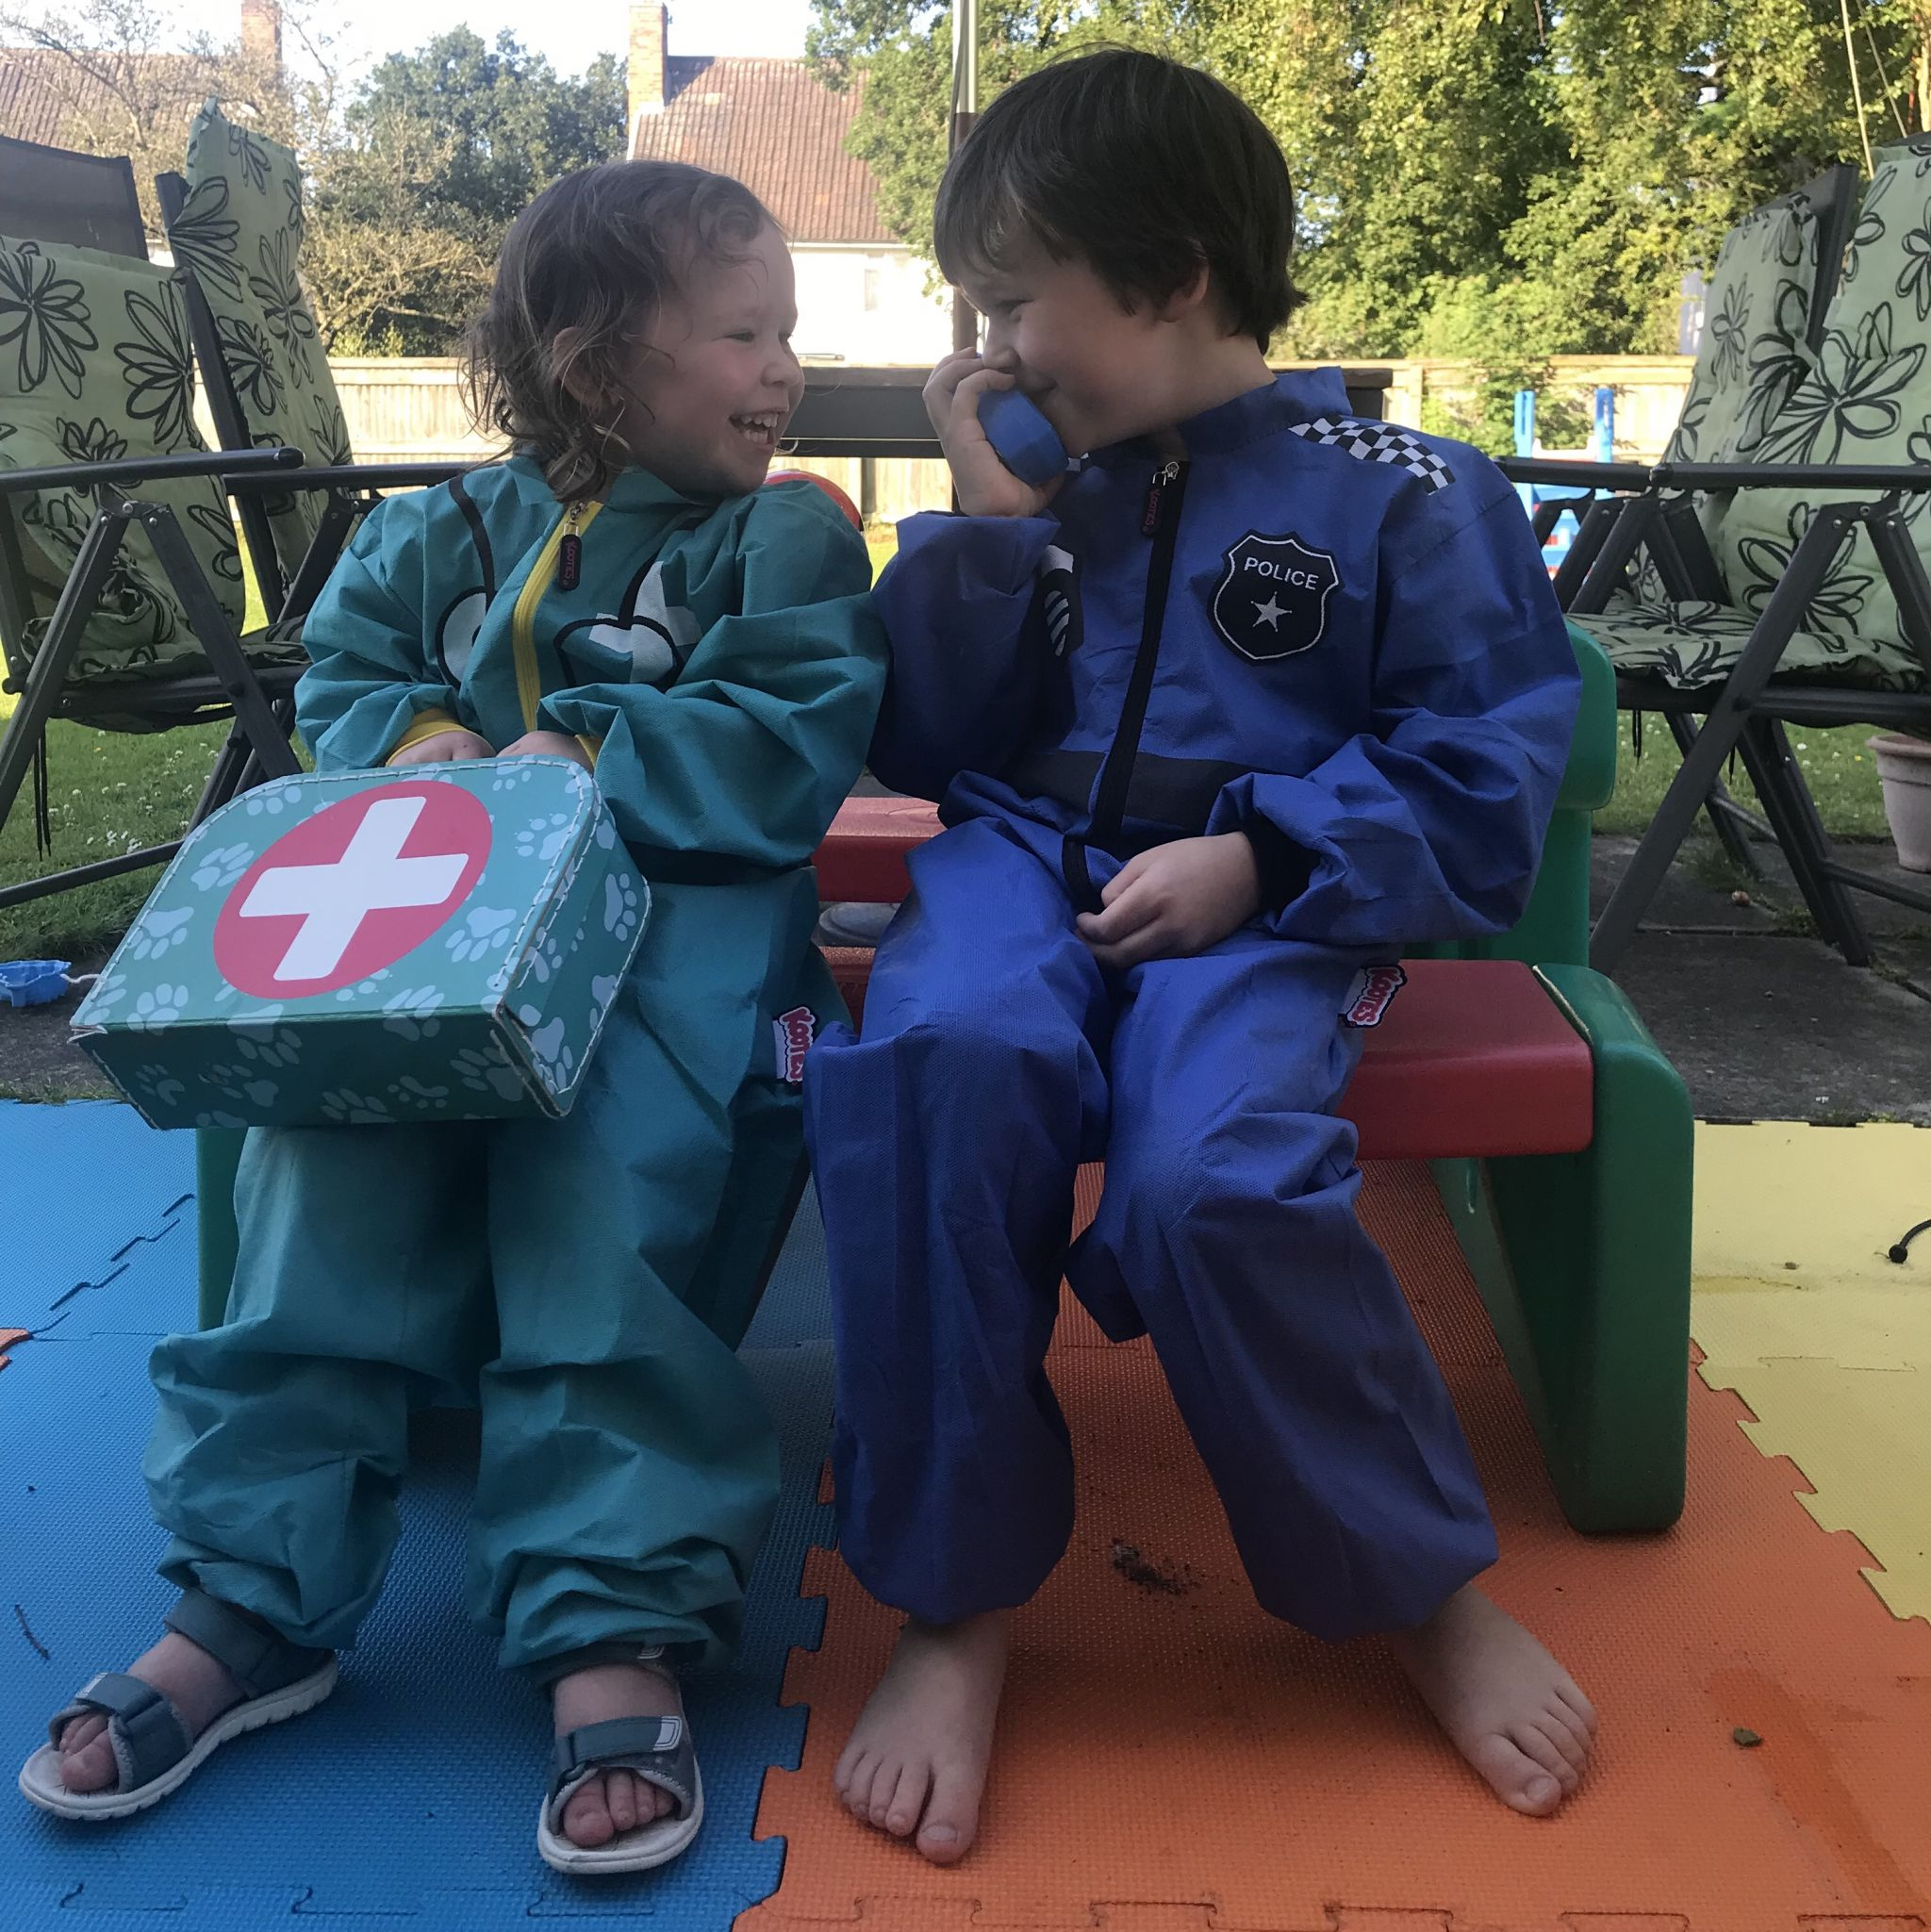 Two children sat down laughing at each other wearing play overalls